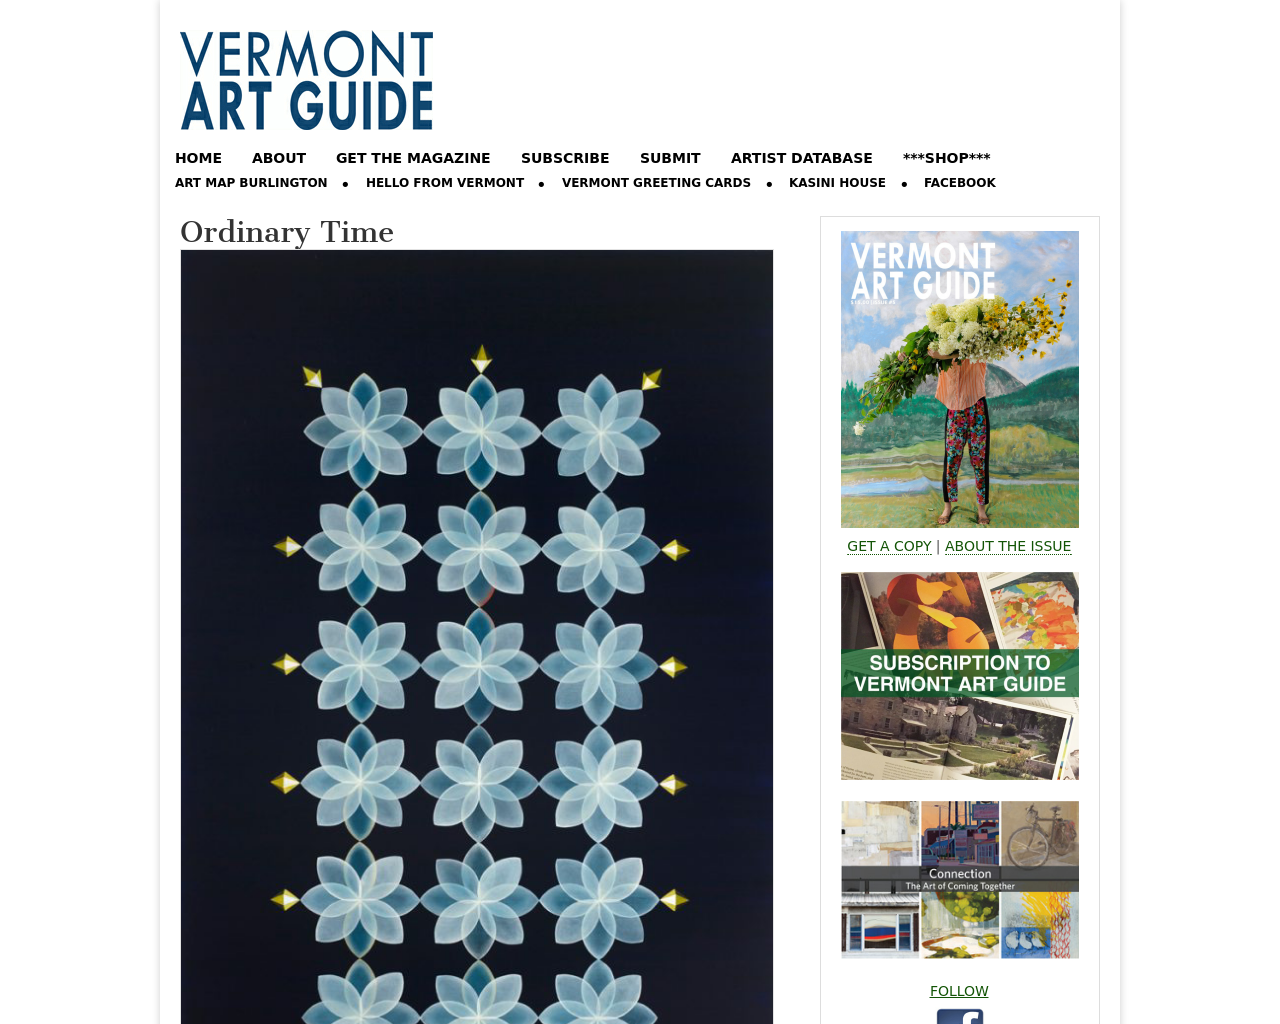 Vermont-Art-Guide-Advertising-Reviews-Pricing